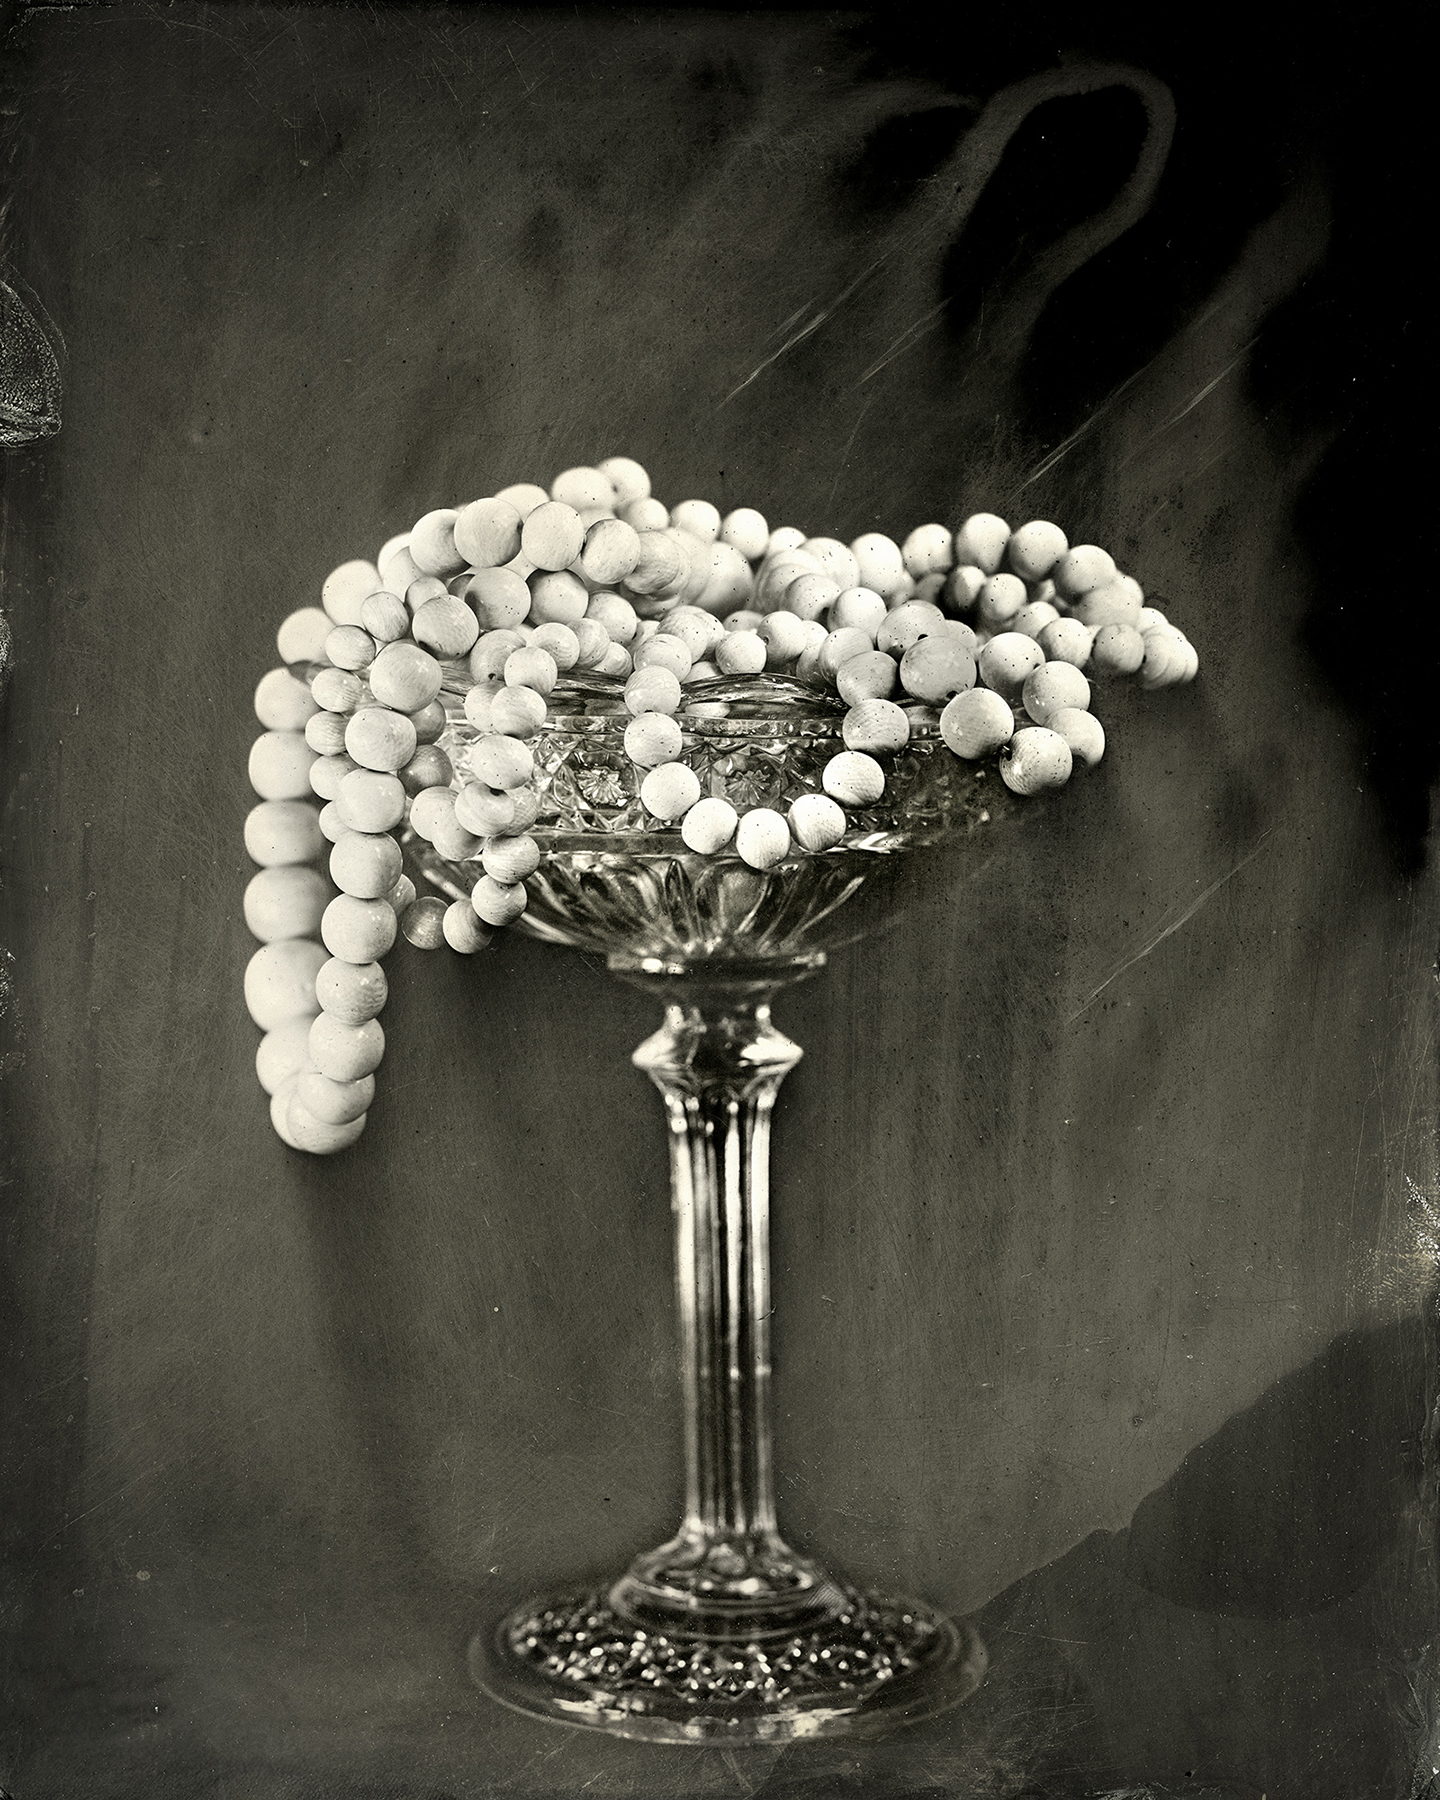 Christine_Fitzgerald_TRAFFICKED_Ivory Necklace in Glass Dish_04.jpg